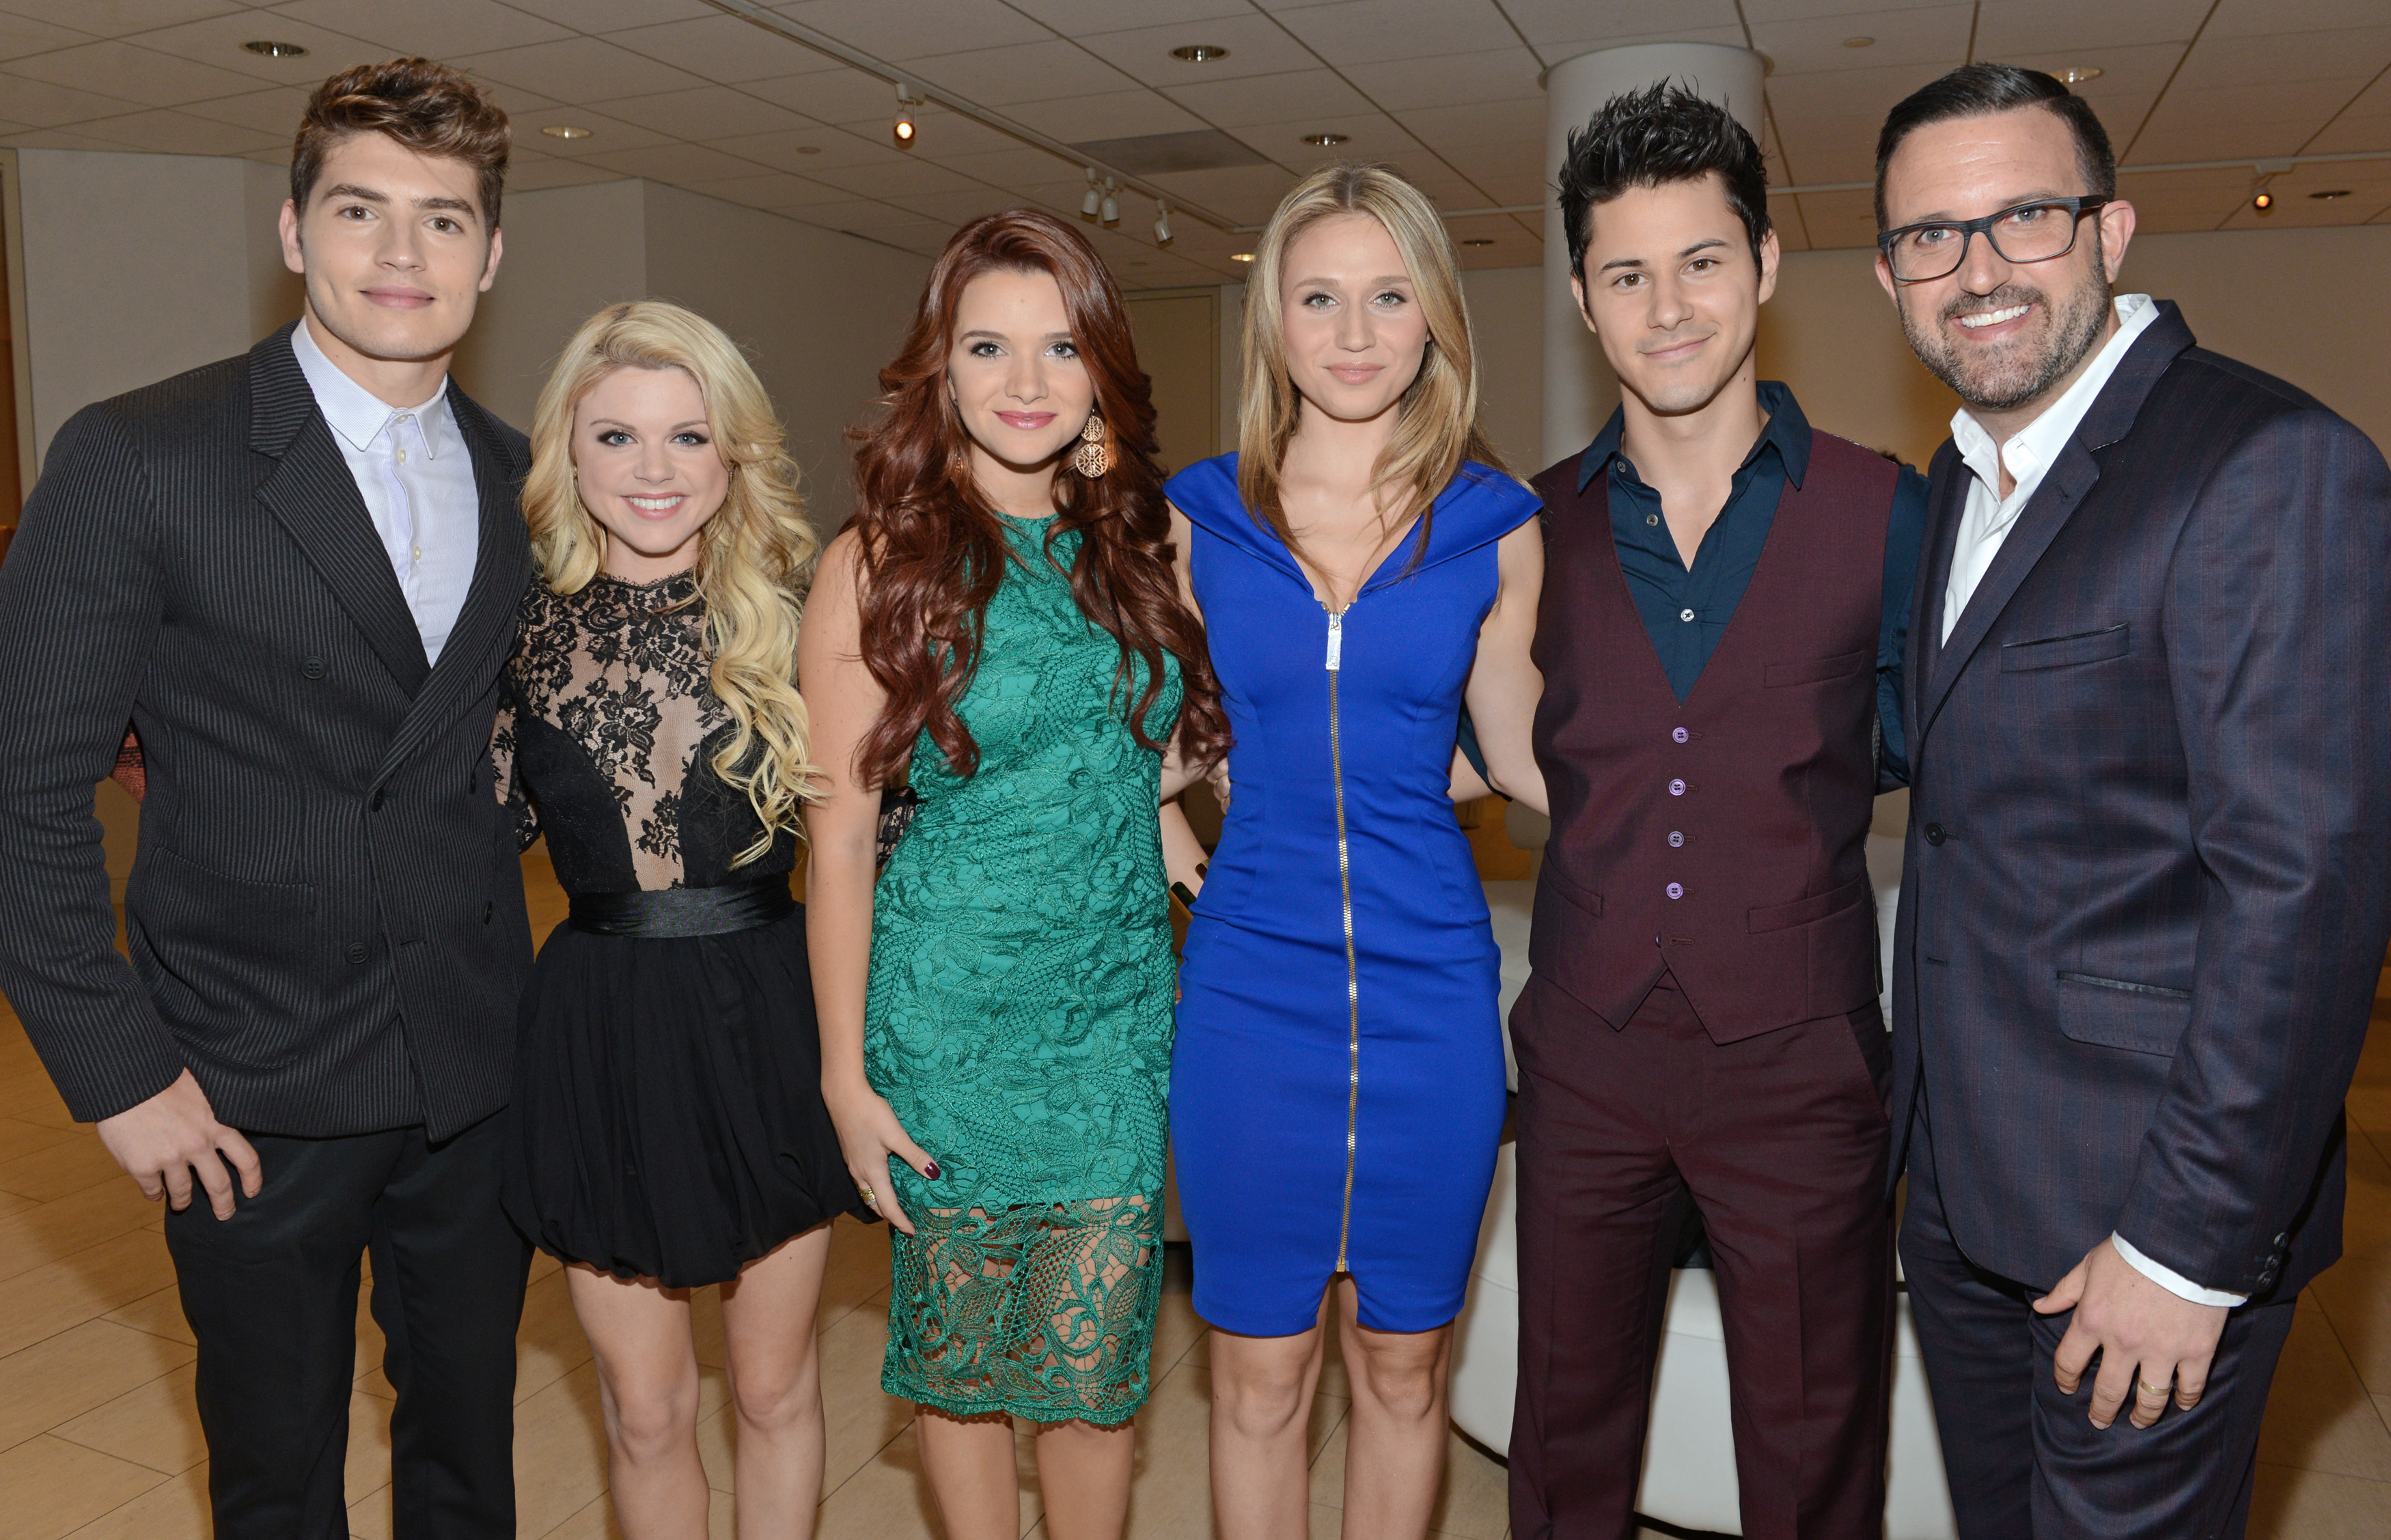 PaleyFest Fall TV Preview 2014: MTV's Faking It [VIDEO and PHOTOS]